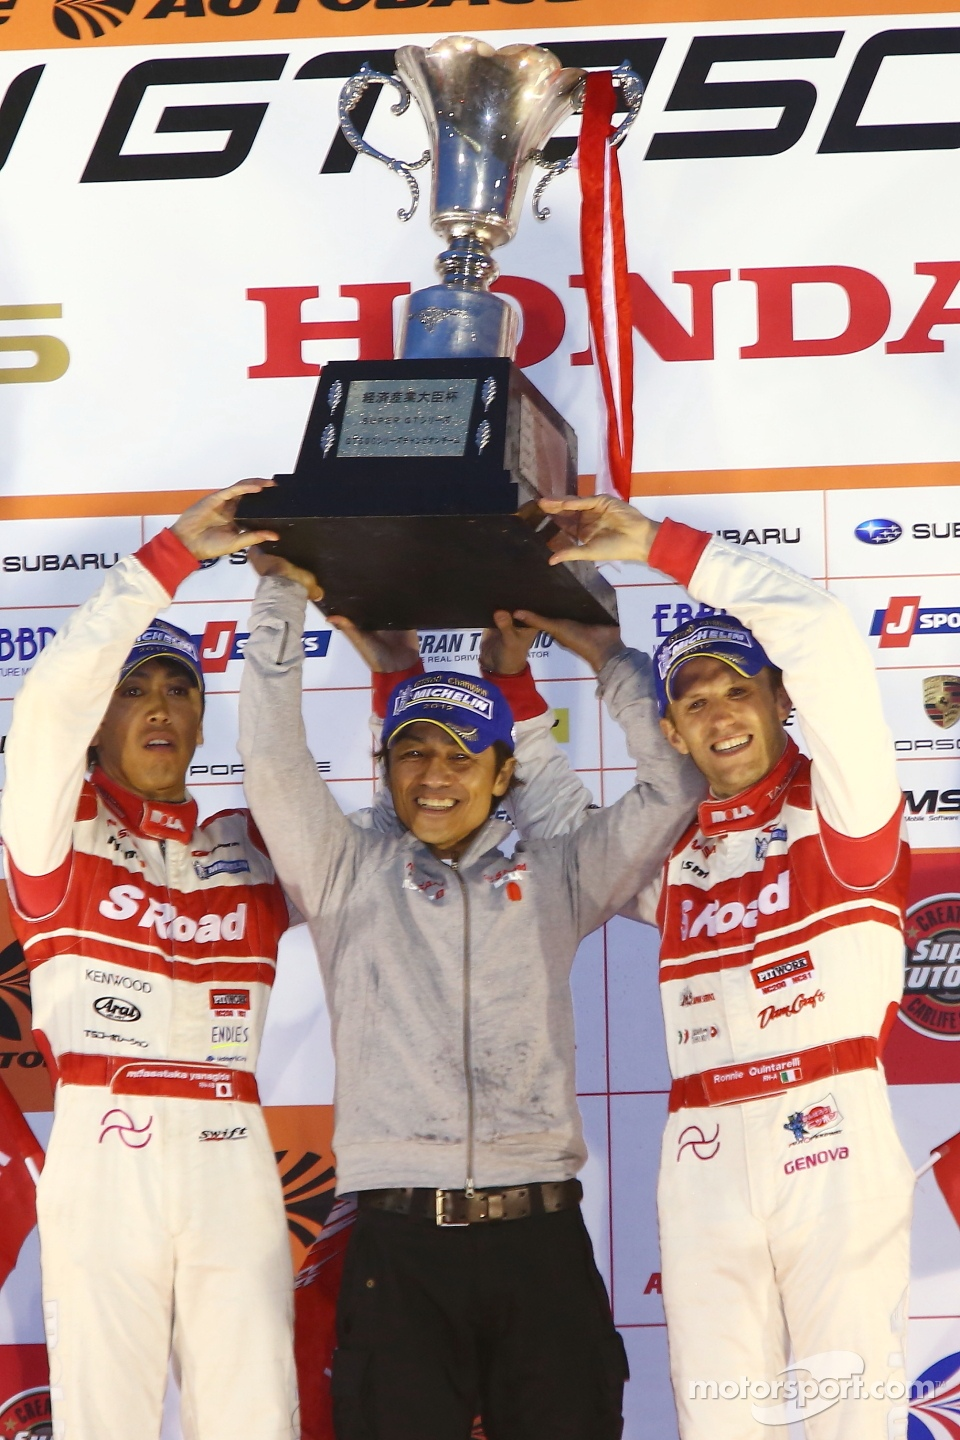 GT500 podium: second place and 2012 champions Masataka Yanagida, Ronnie Quintarelli